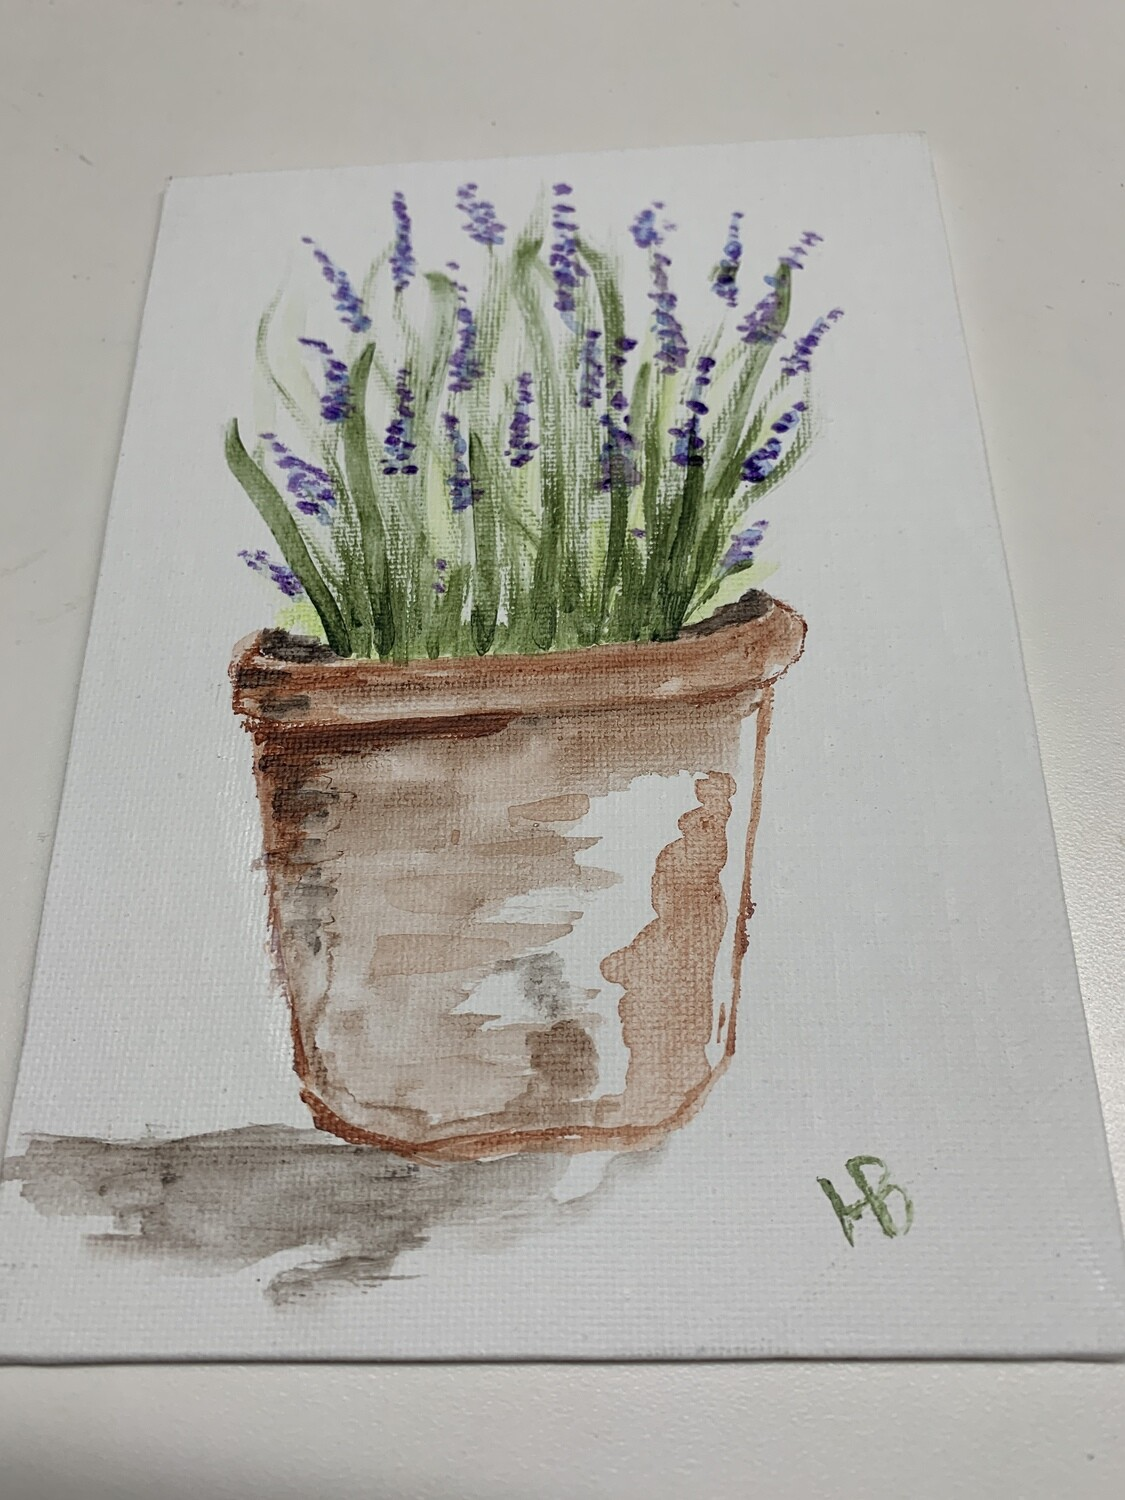 5x7 Acrylic Painting, Lavender in a pot